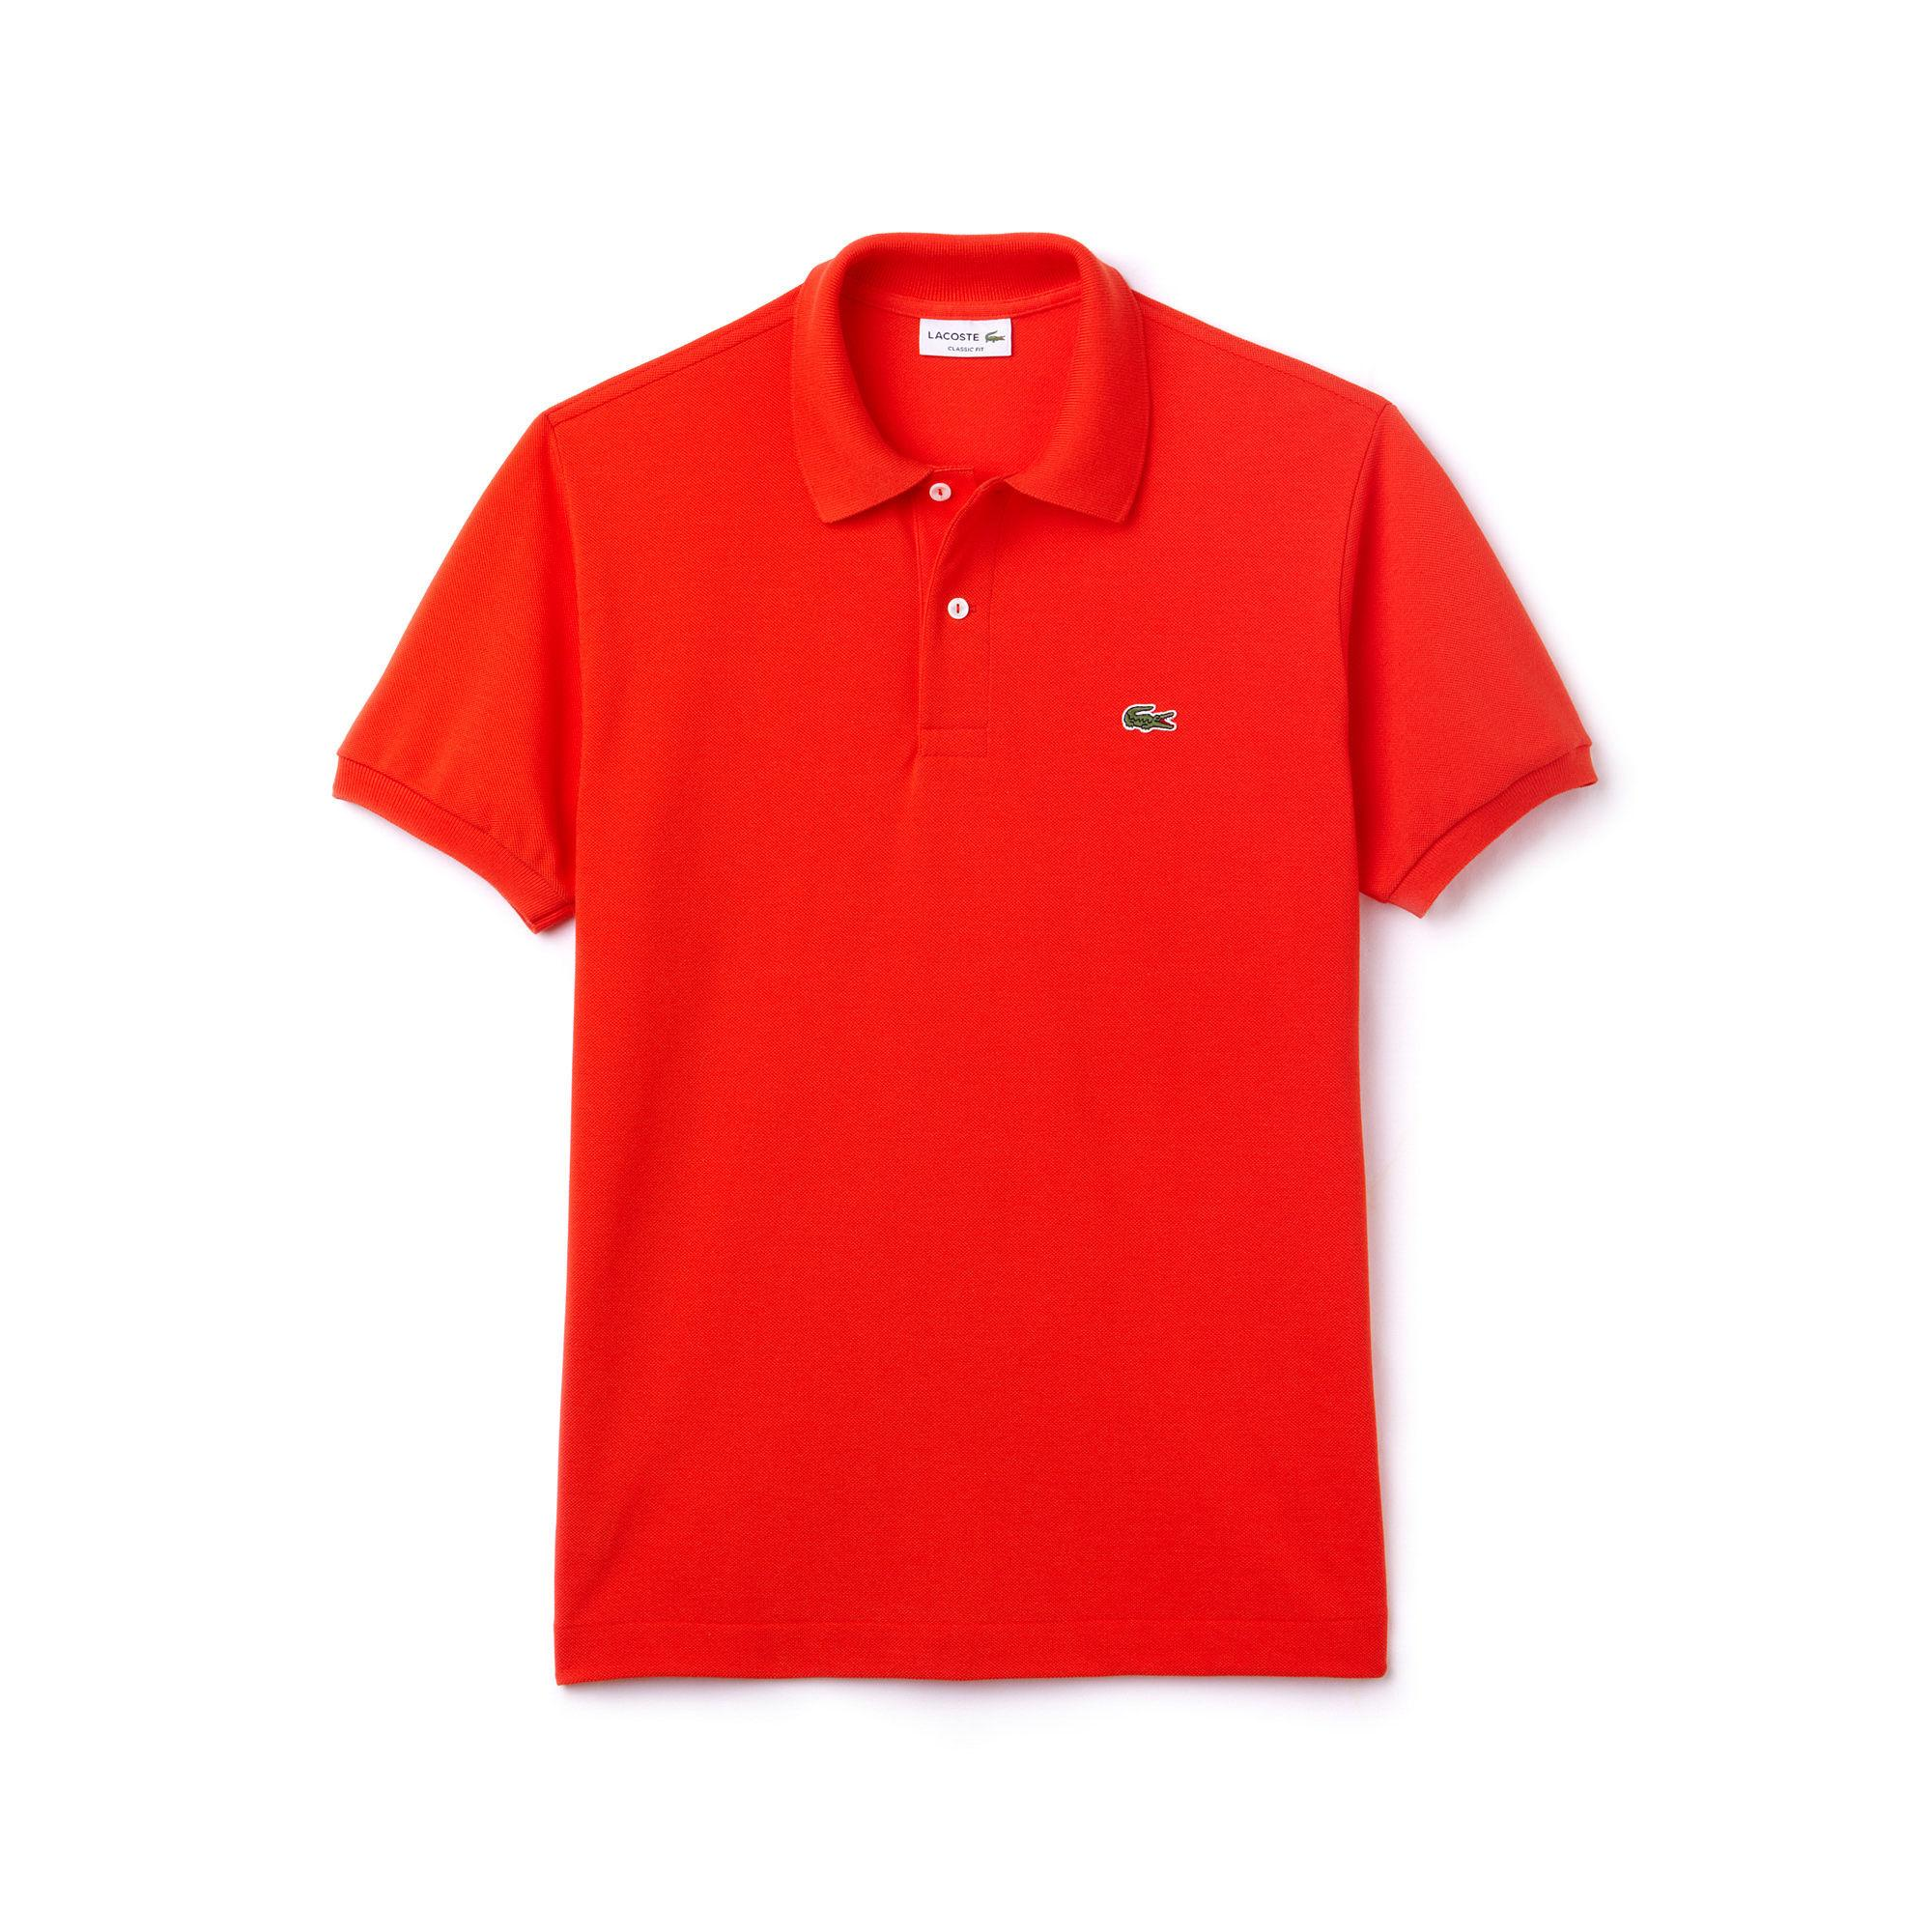 Lacoste Lacoste Classic Fit L.12.12 Polo Shirts